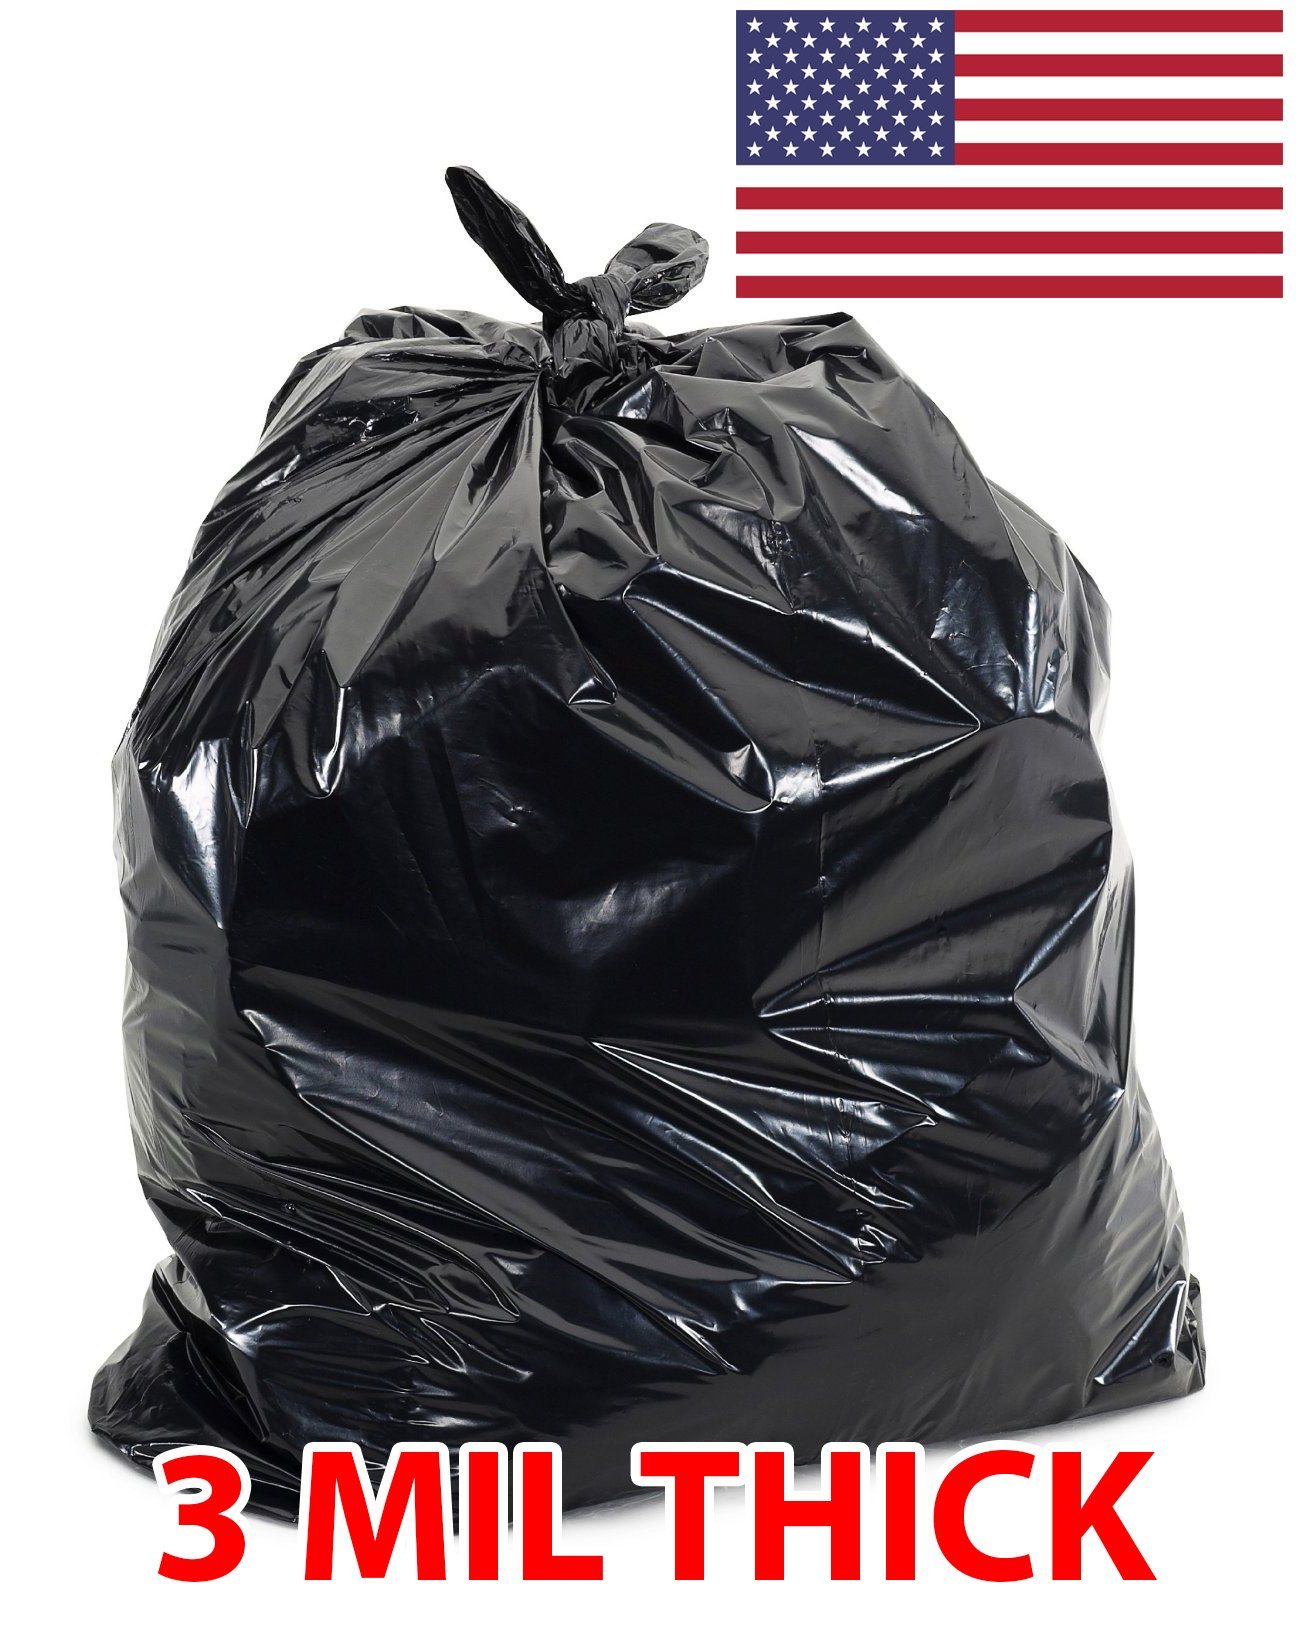 60 Gallon Extra Large Contractor Trash Bags 3 Mil, Durable Heavy Duty, Made in USA, Tough Garbage Bags for Cleanups Drum Liners 3mil (100)-41x55 by Ox Plastics (Image #1)